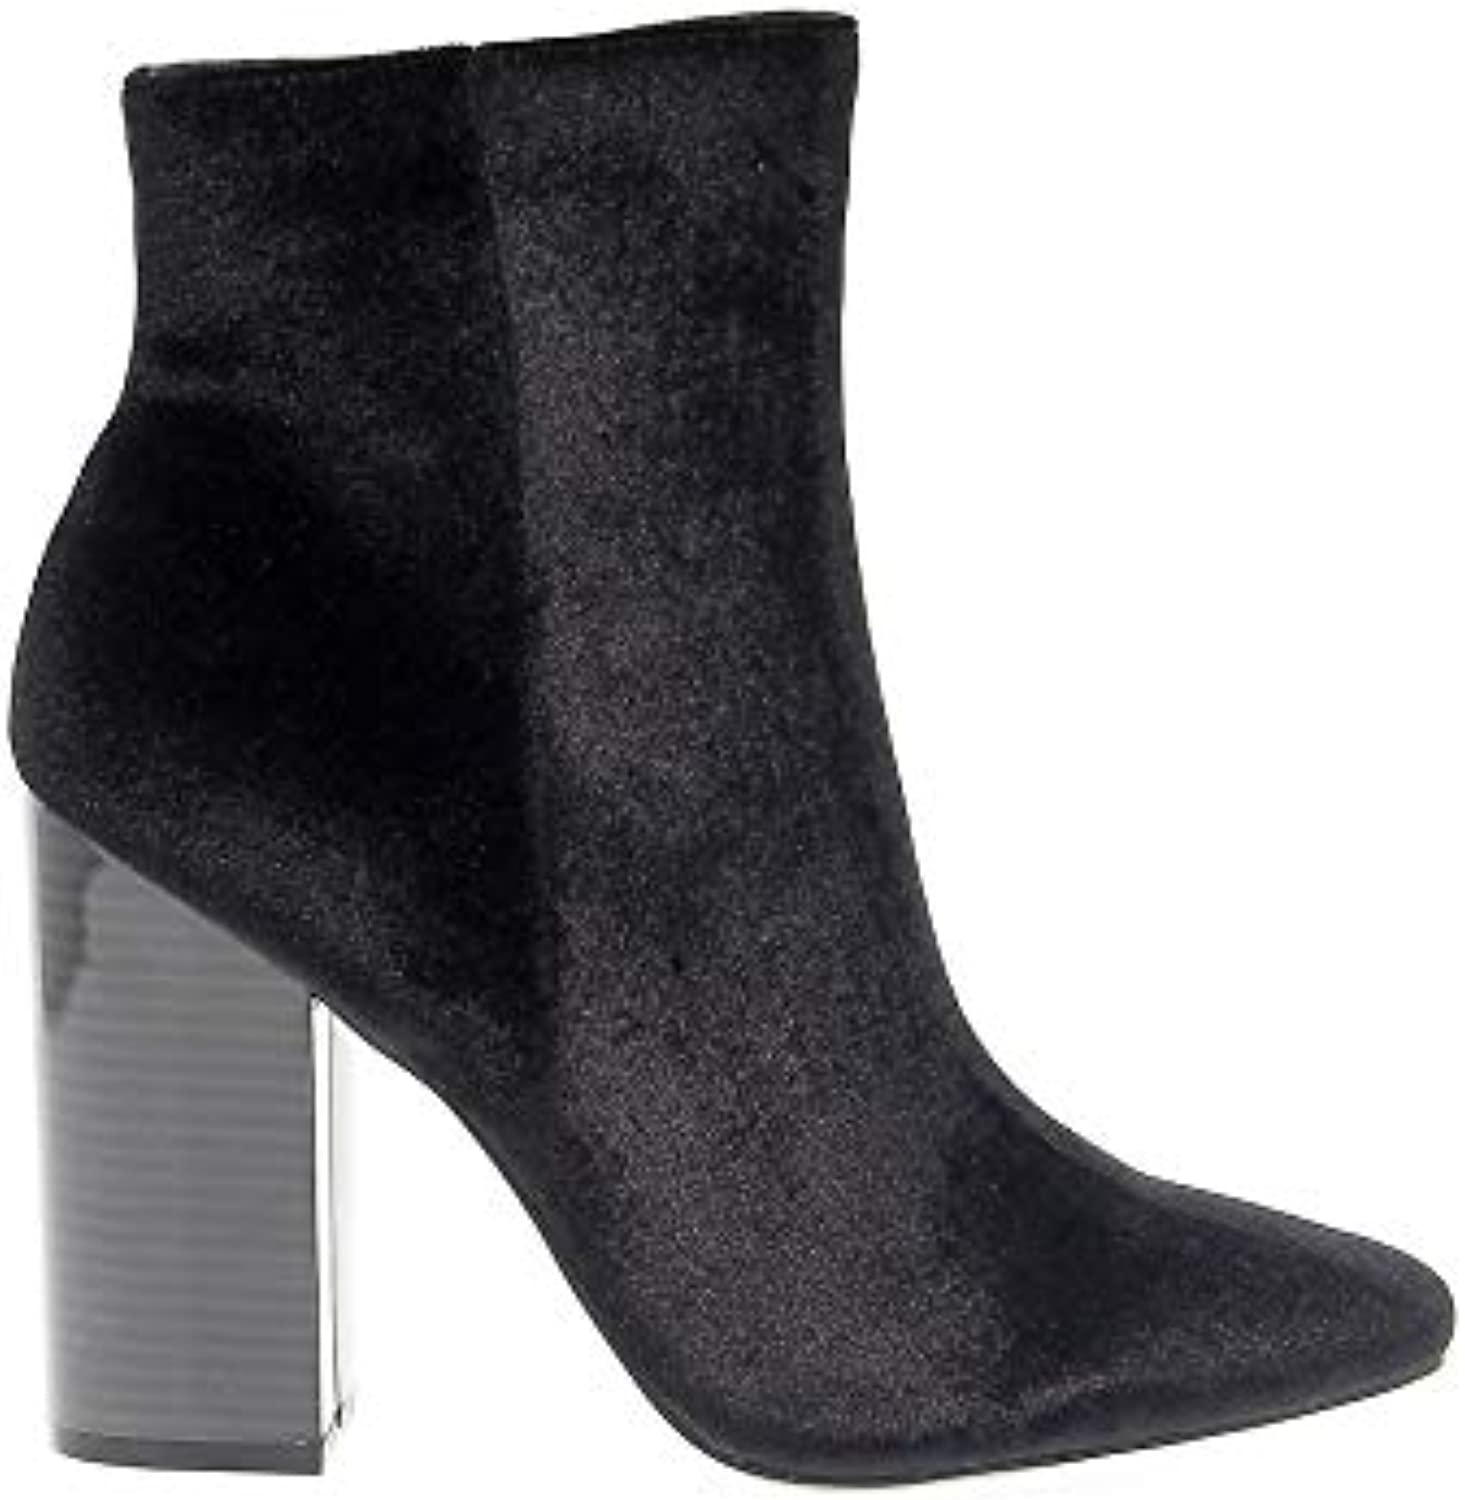 8ee354c02133 Windsor Smith Women s WINDVERA Black Velvet Velvet Velvet Ankle Boots  B07HGGJG5B Parent f0d9b0